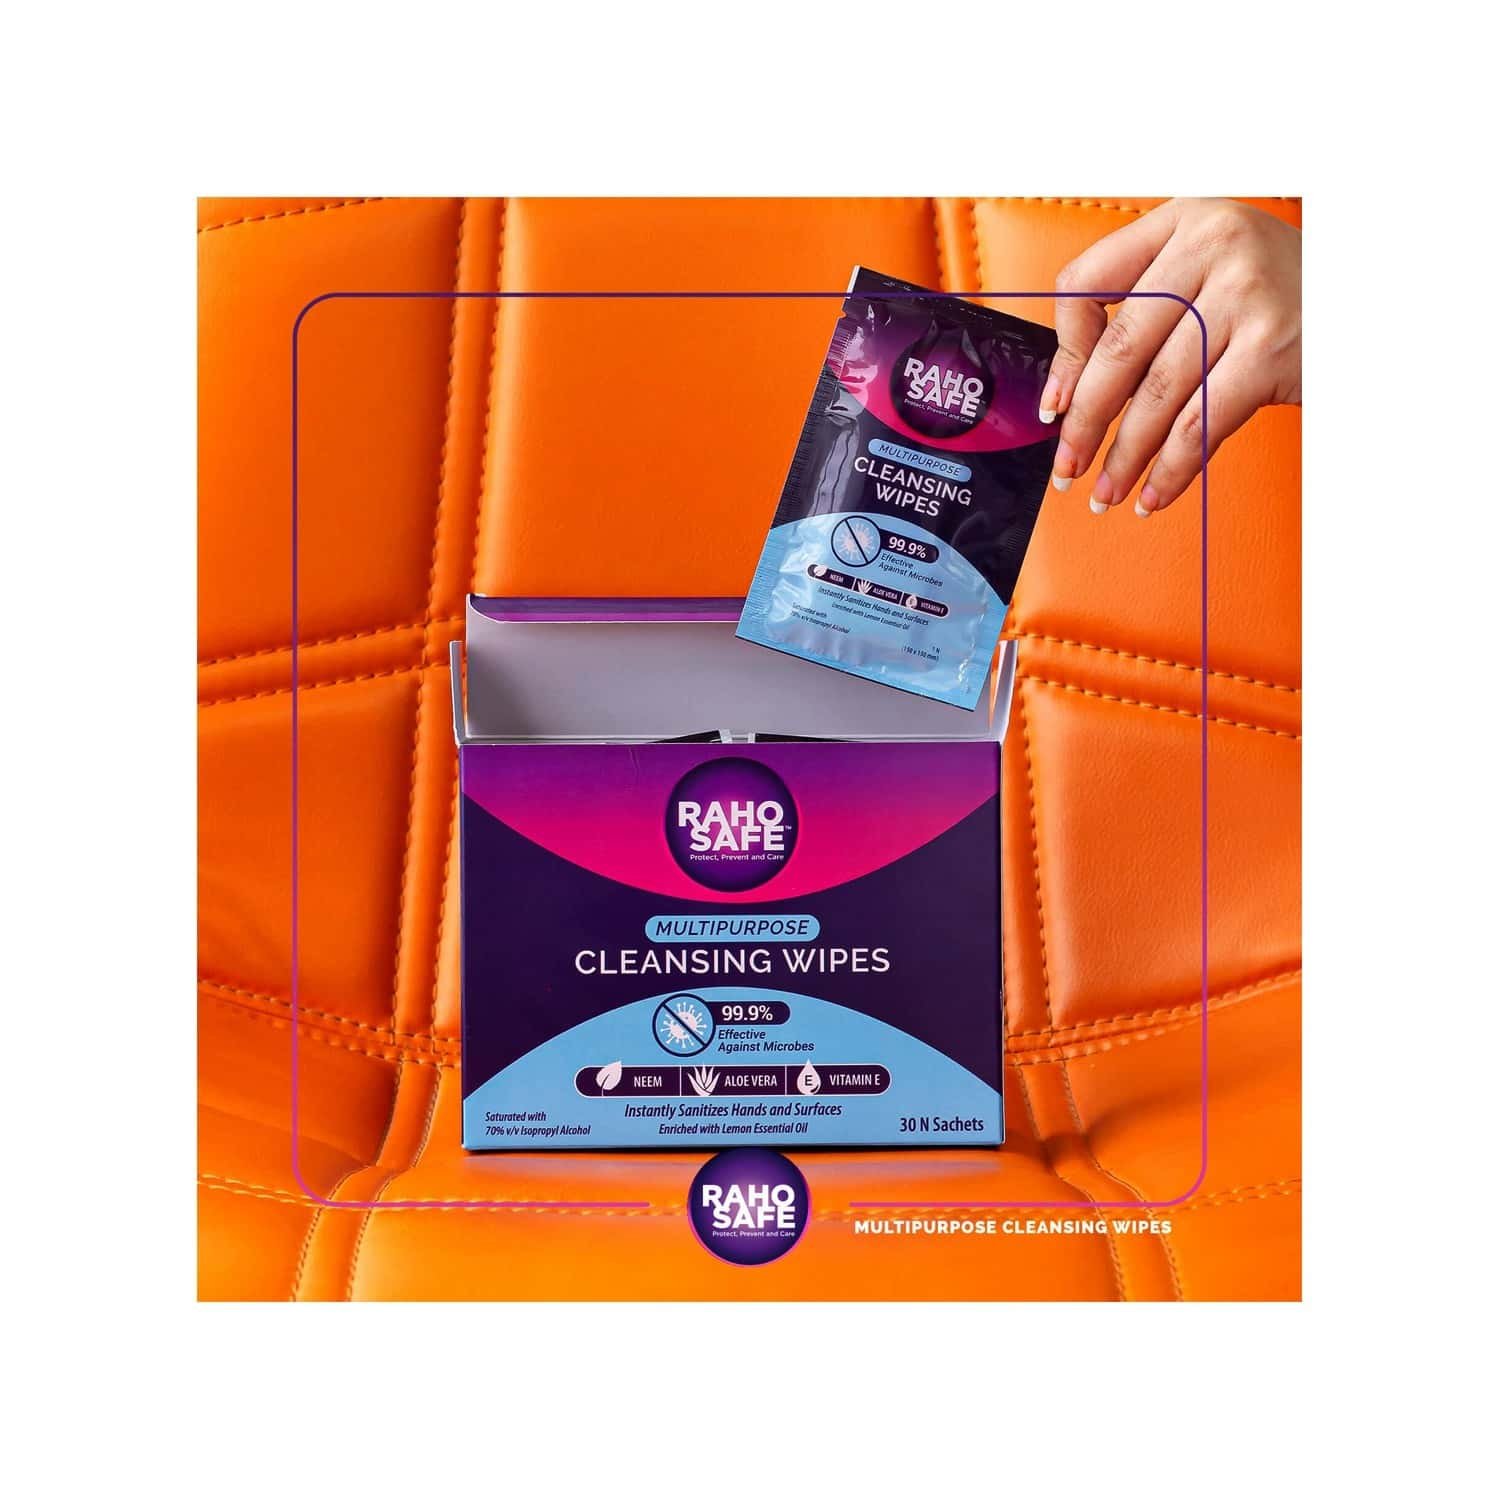 Raho Safe Multi Purpose Cleansing Wipes - Pack Of 30